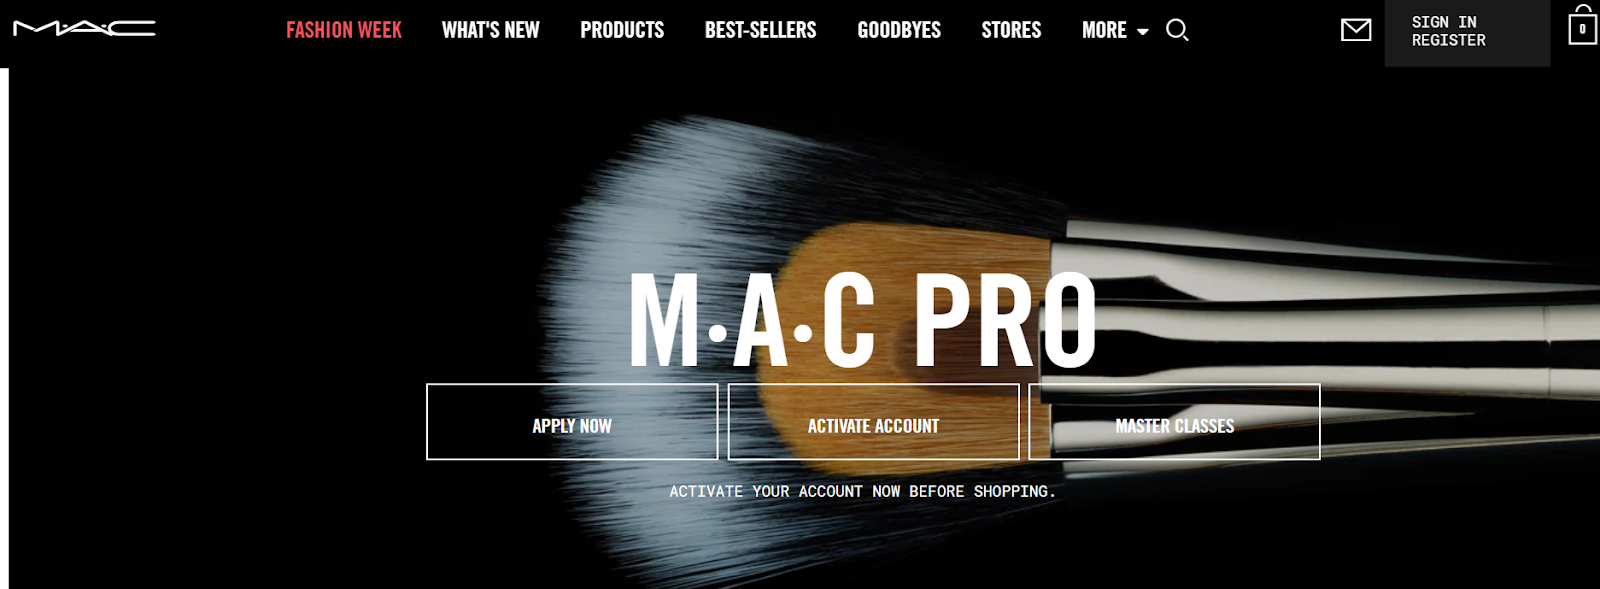 MAC Cosmetics loyalty program - exclusivity makes it an attractive program to join